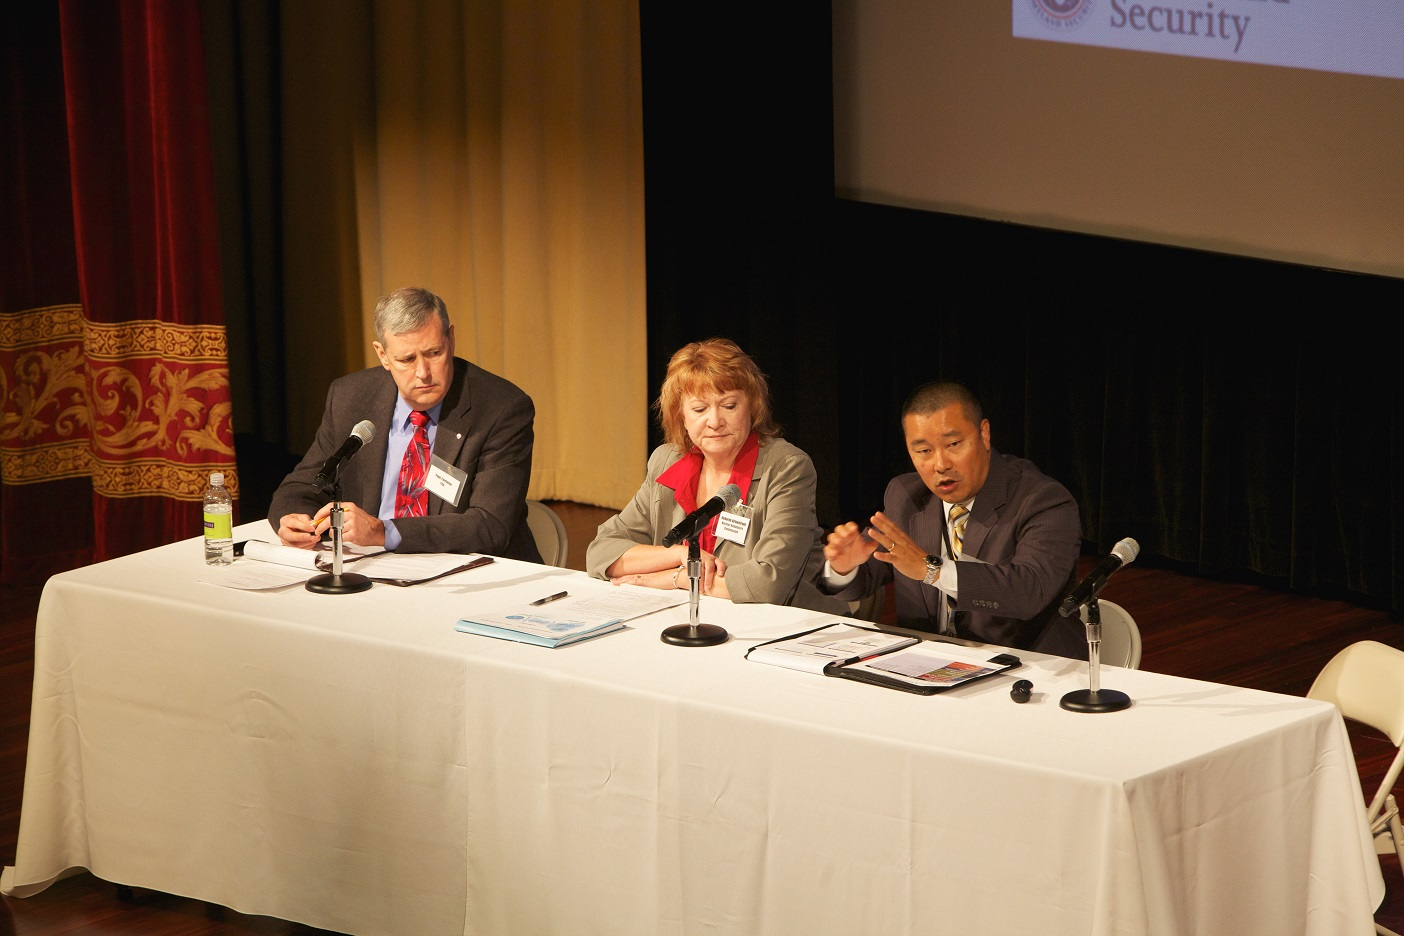 Paul Fontaine, FAA, Deborah Armentrout, NRC, and Mark Peasley (speaking), DHS